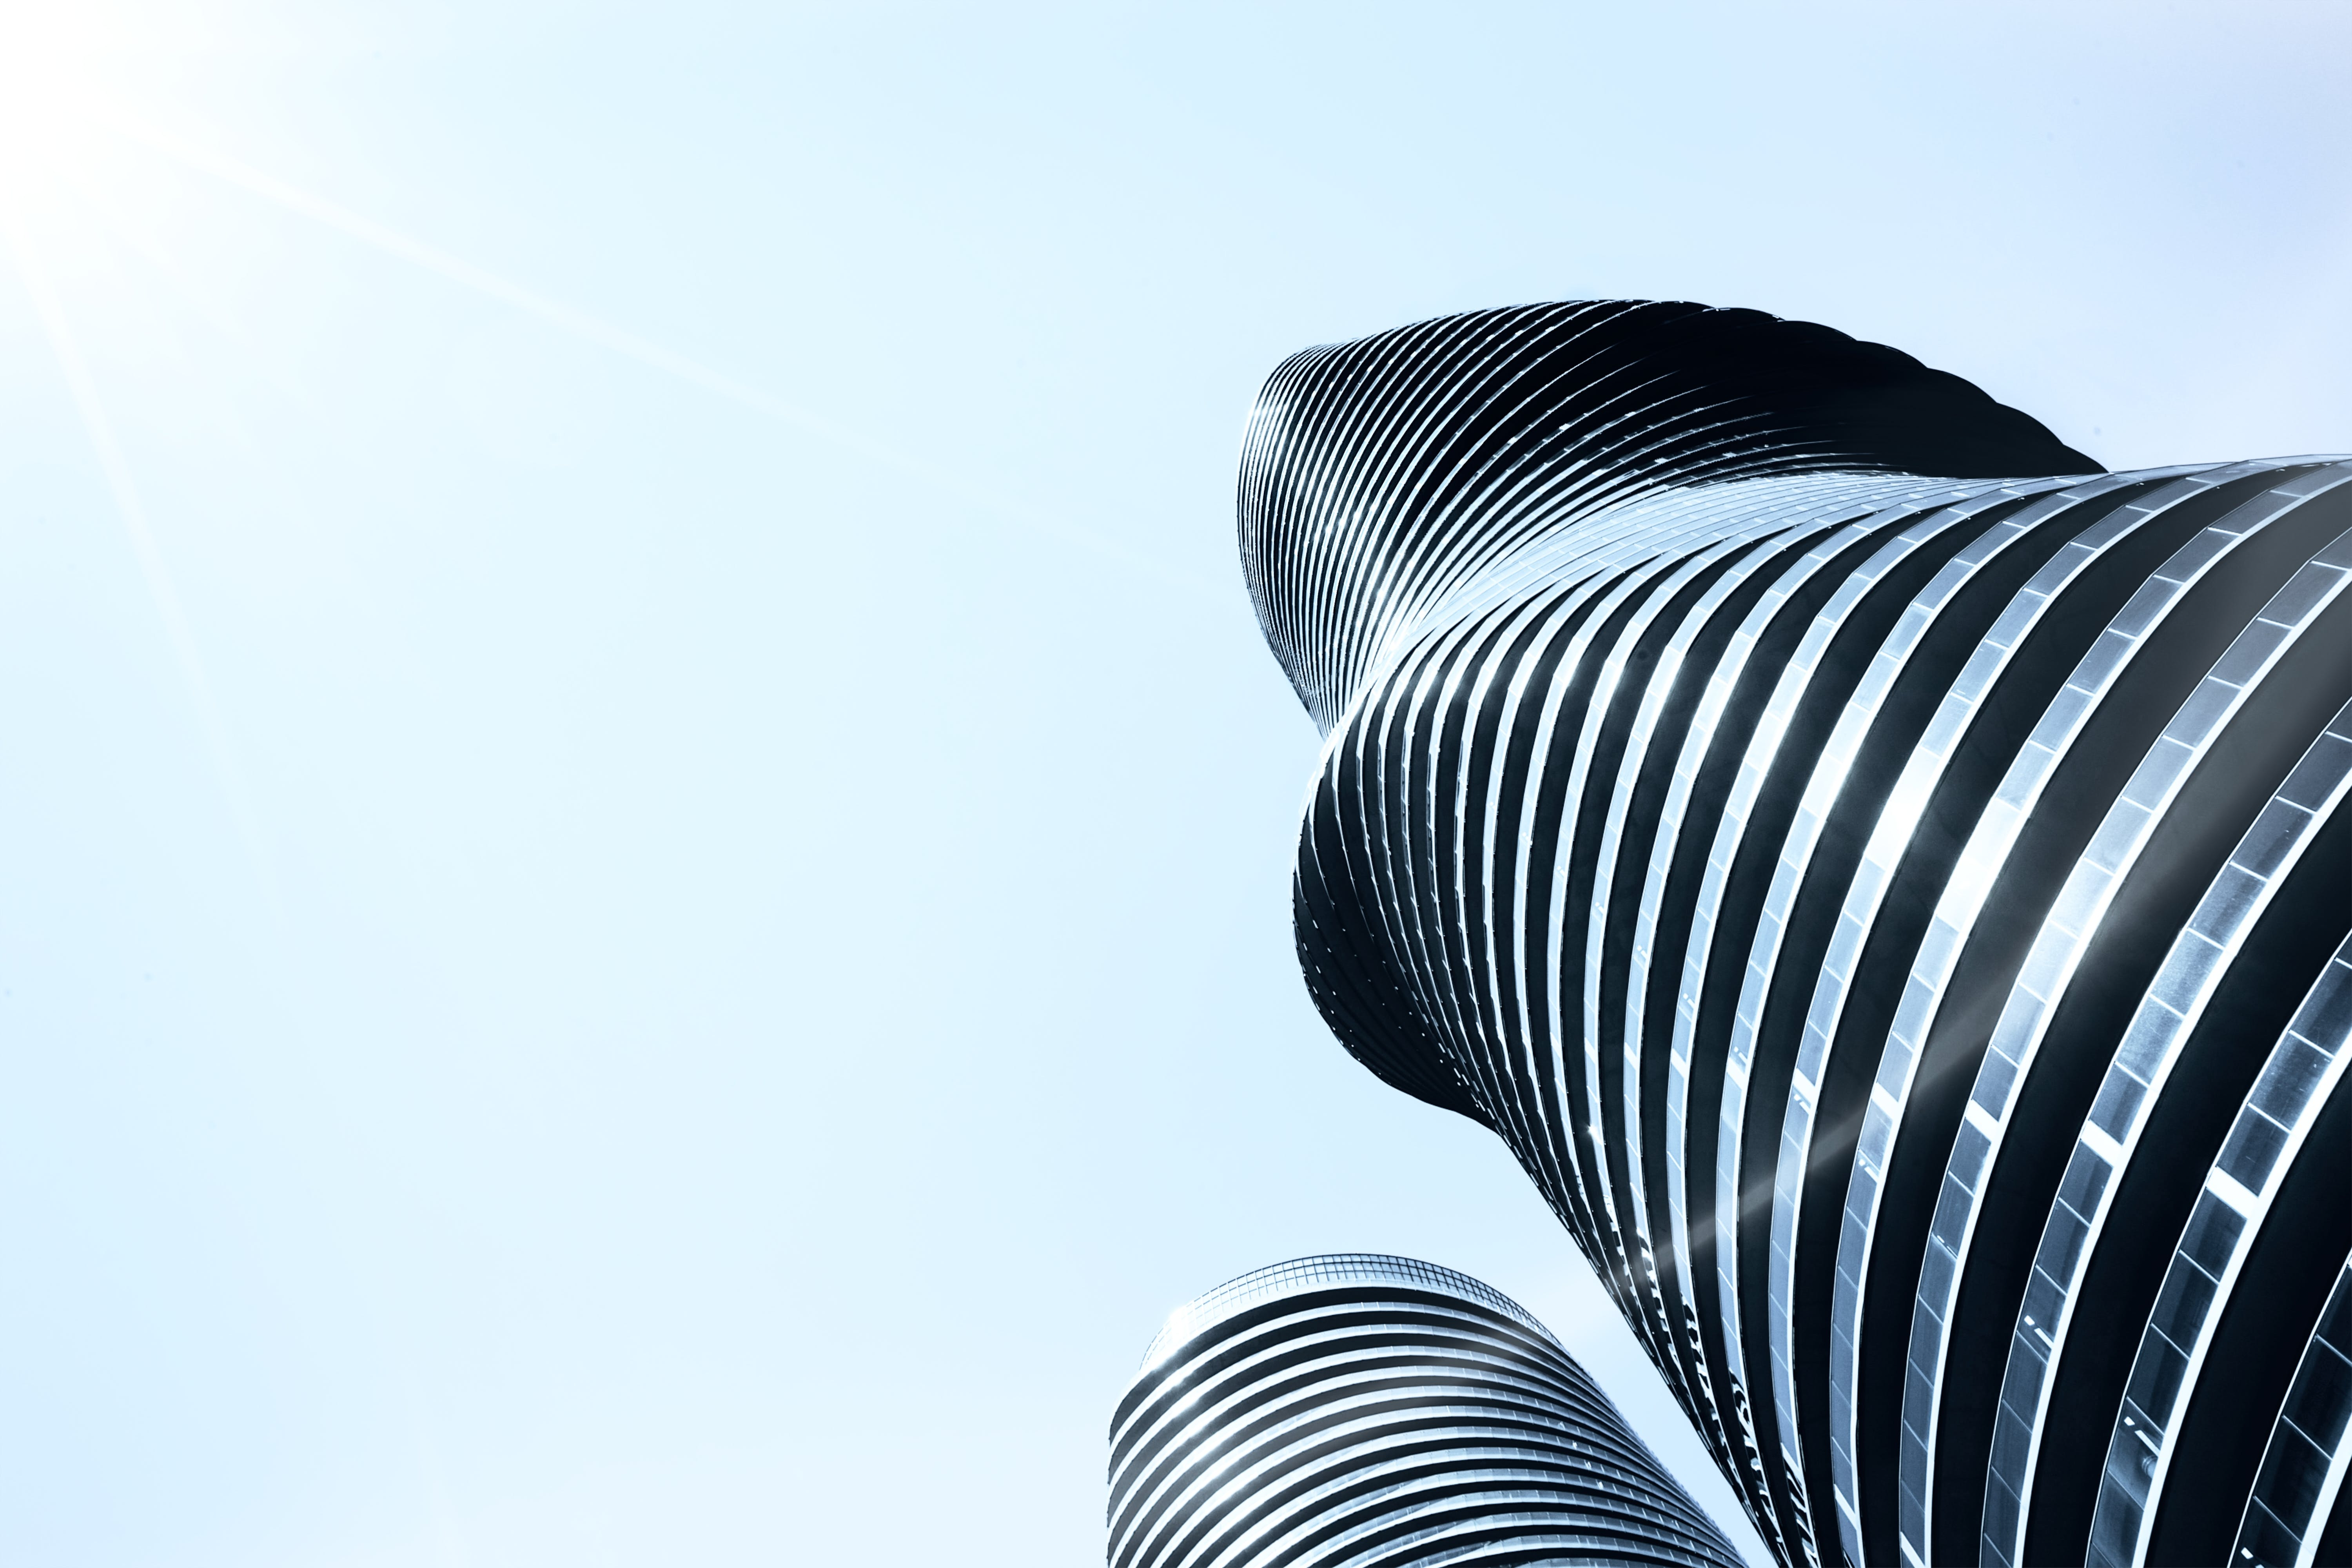 Low-angle Photography of Spiraling High-rise Building